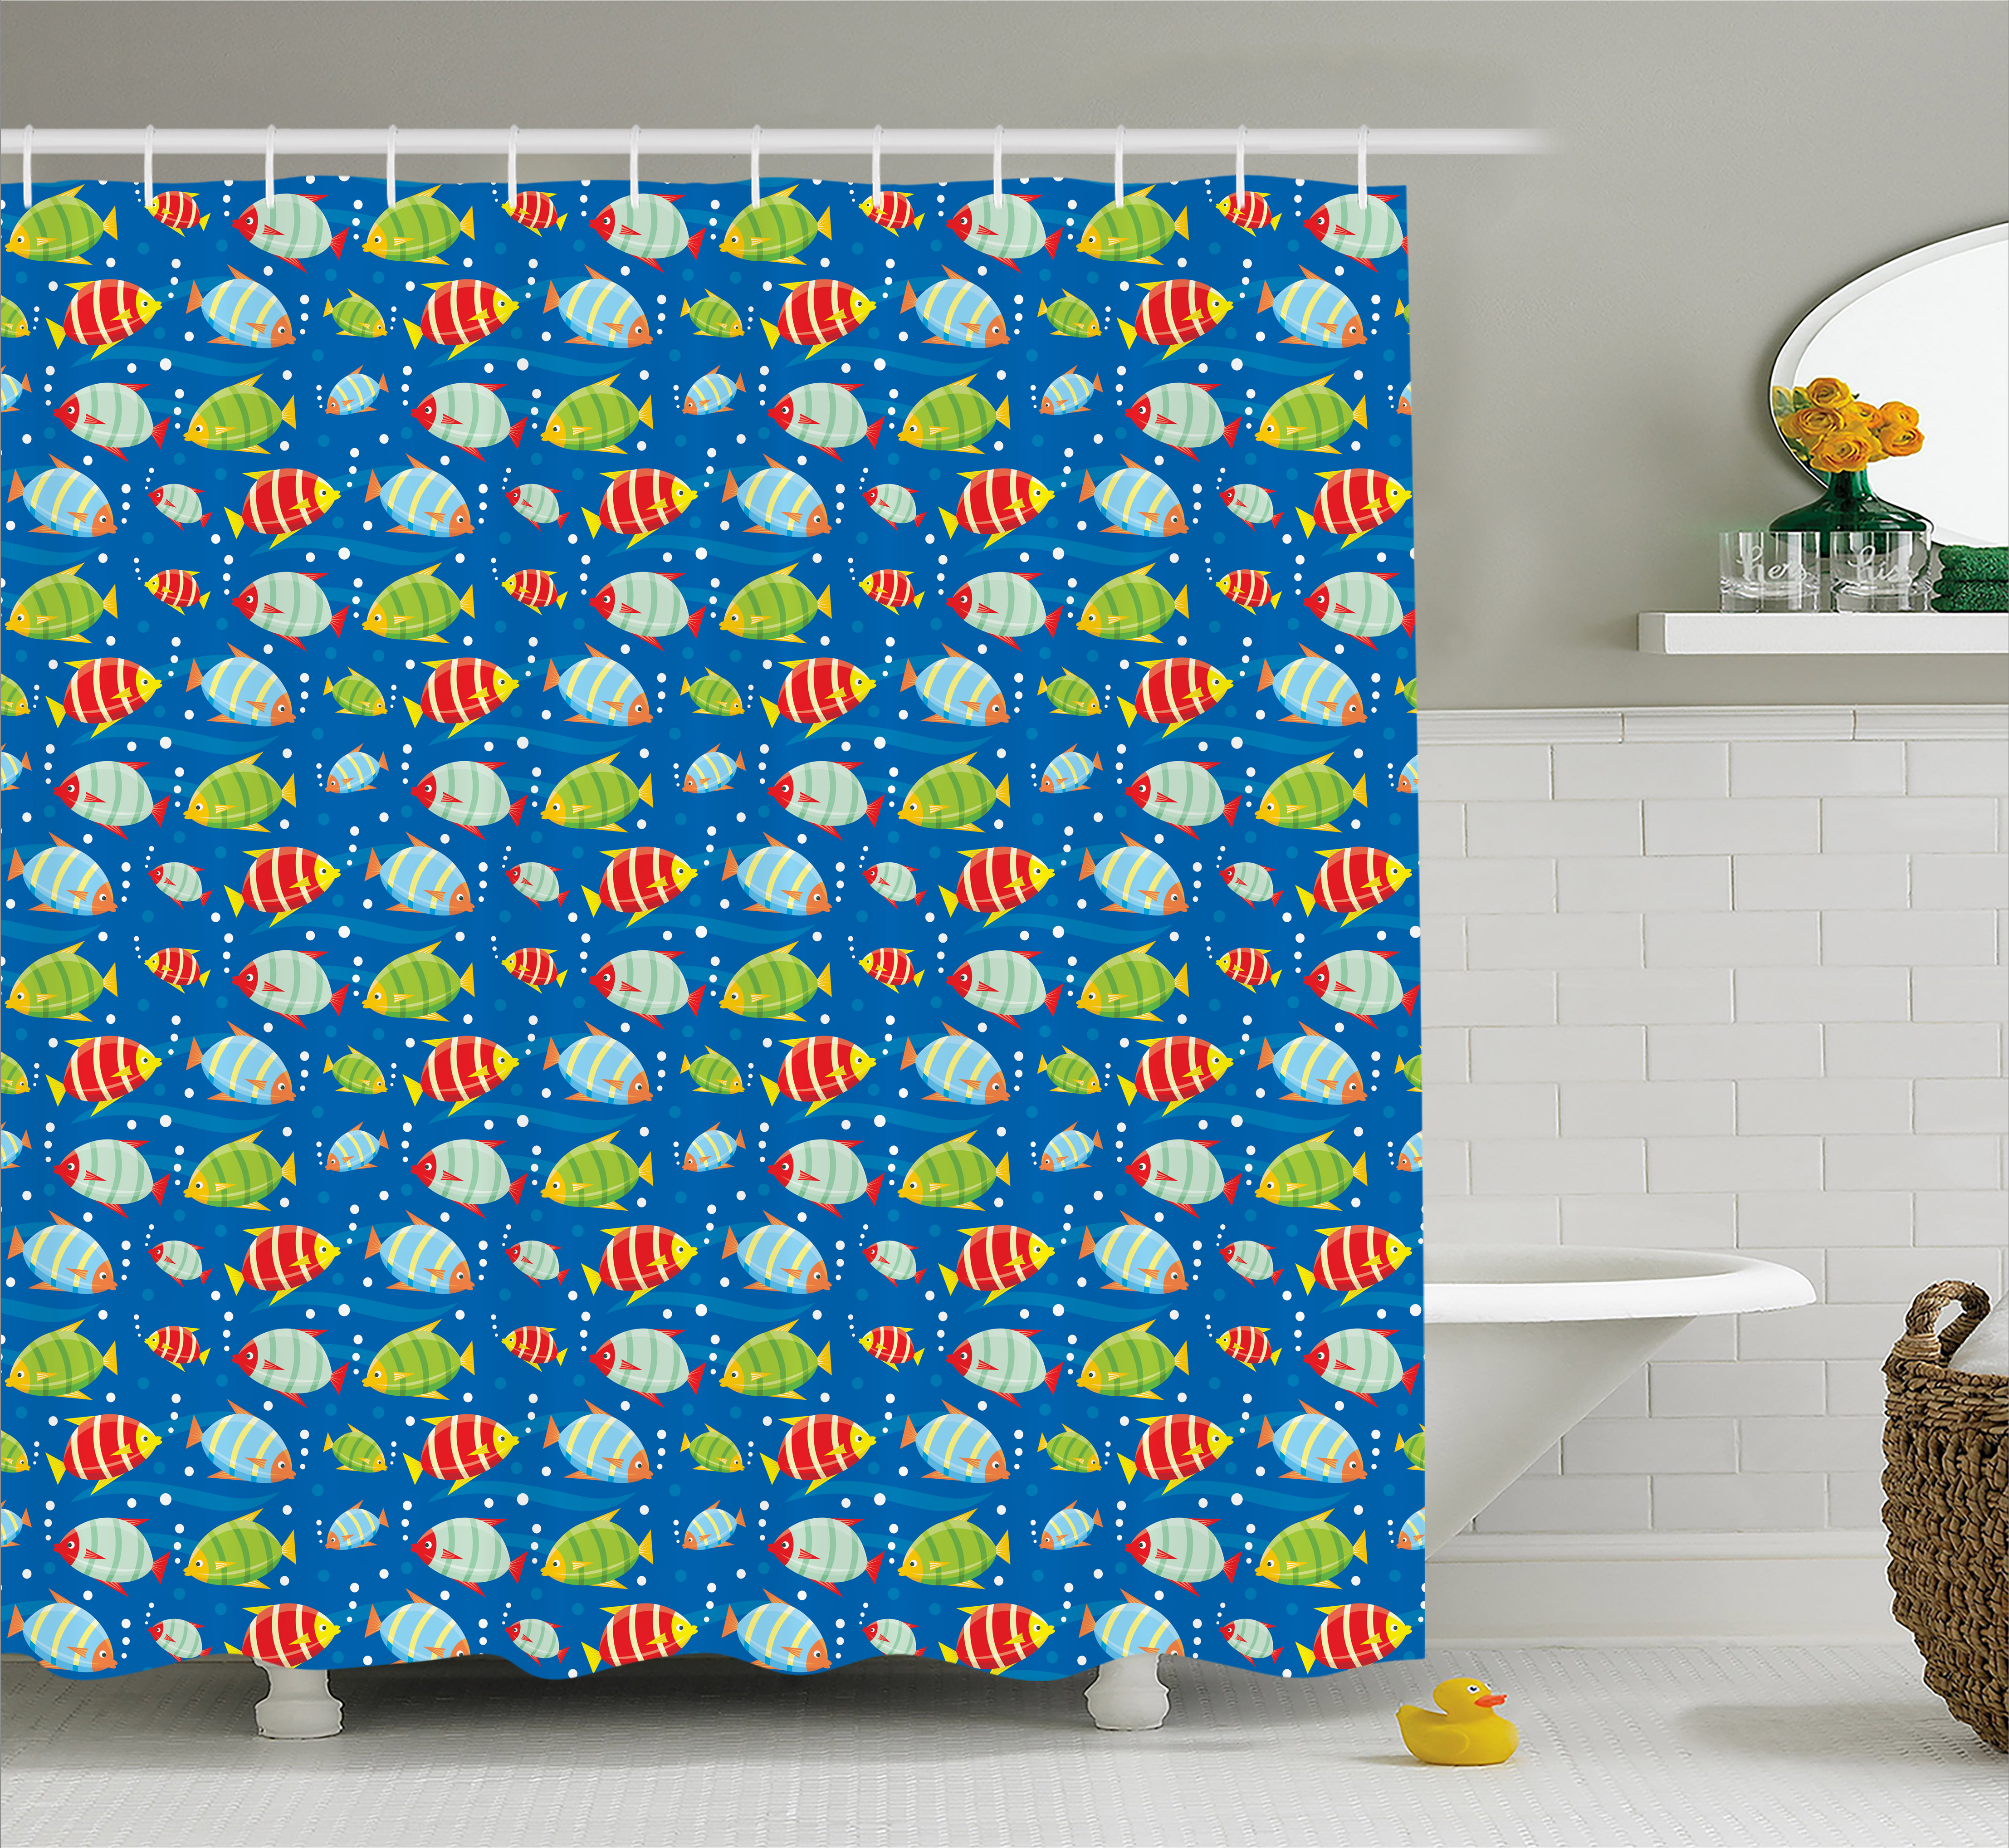 Boy's Shower Curtain, Colorful Striped Cartoon Fishes Swimming in the Sea with Bubbles Aquatic Life Theme, Fabric Bathroom Set with Hooks, 69W X 70L Inches, Multicolor, by Ambesonne